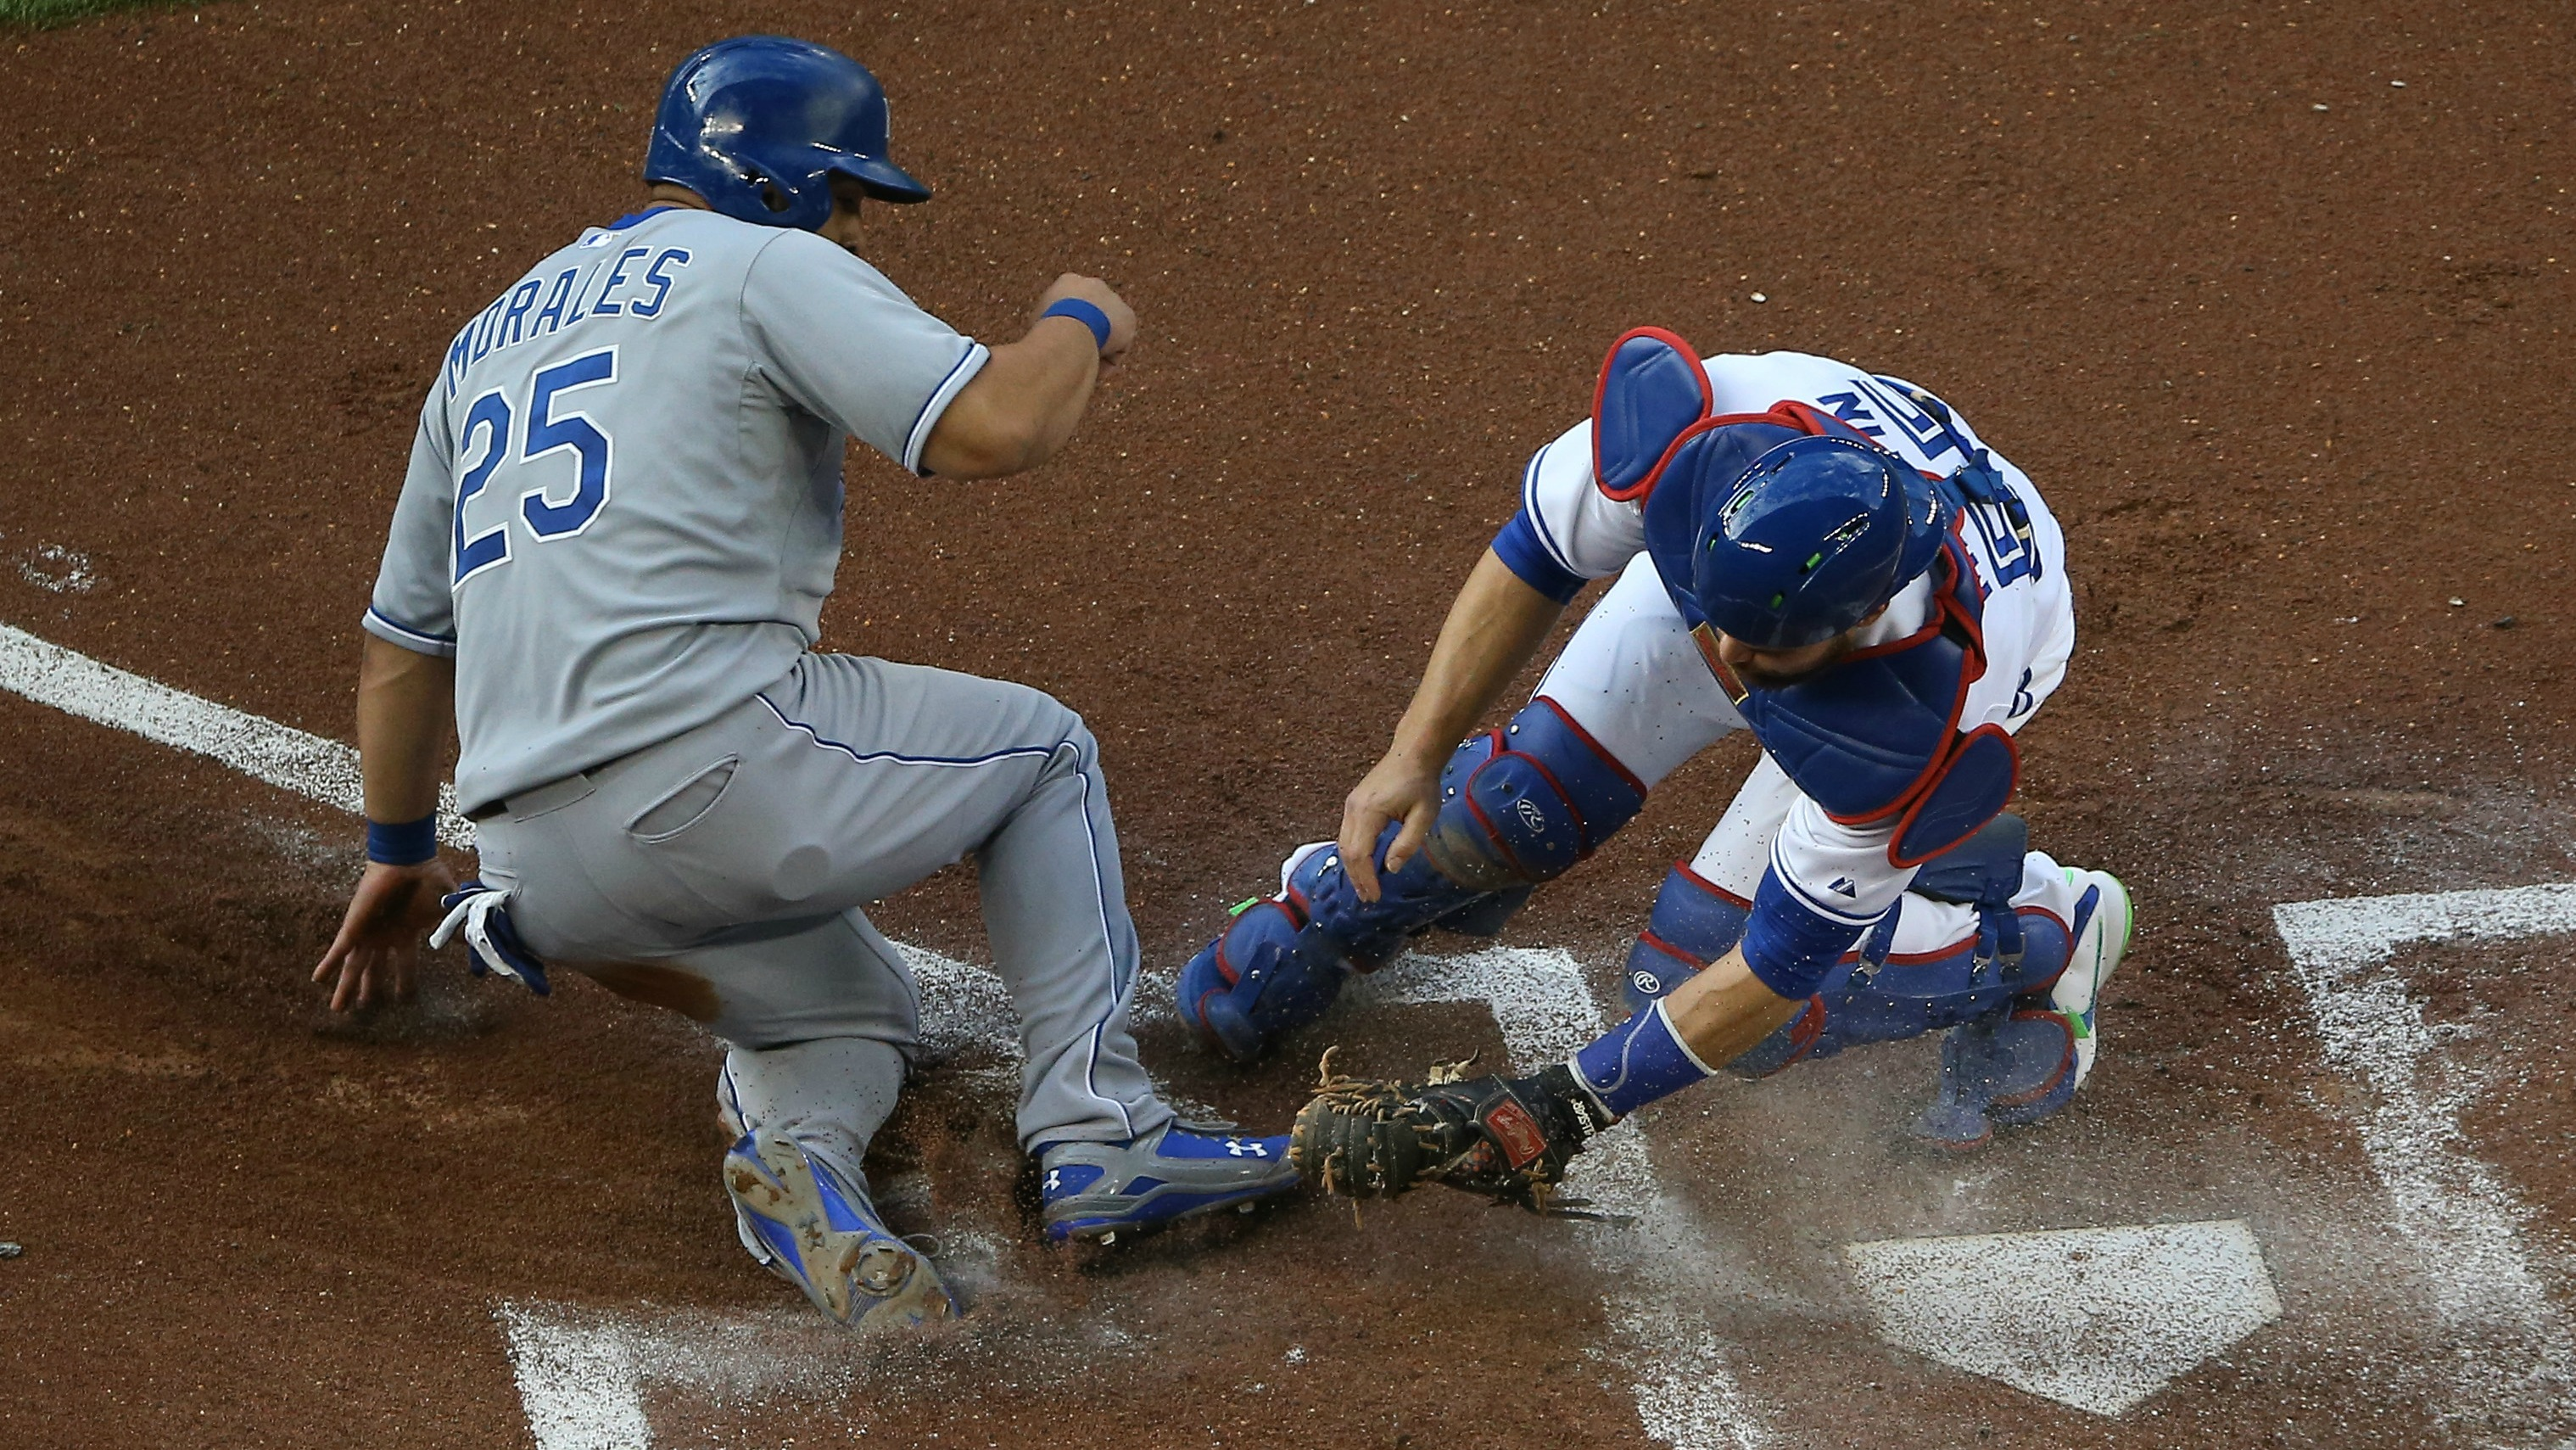 TORONTO, CANADA - JULY 31: Kendrys Morales #25 of the Kansas City Royals evades the tag of Russell Martin #55 of the Toronto Blue Jays in the first inning during MLB game action on July 31, 2015 at Rogers Centre in Toronto, Ontario, Canada. (Photo by Tom Szczerbowski/Getty Images) *** Local Caption *** Kendrys Morales; Russell Martin